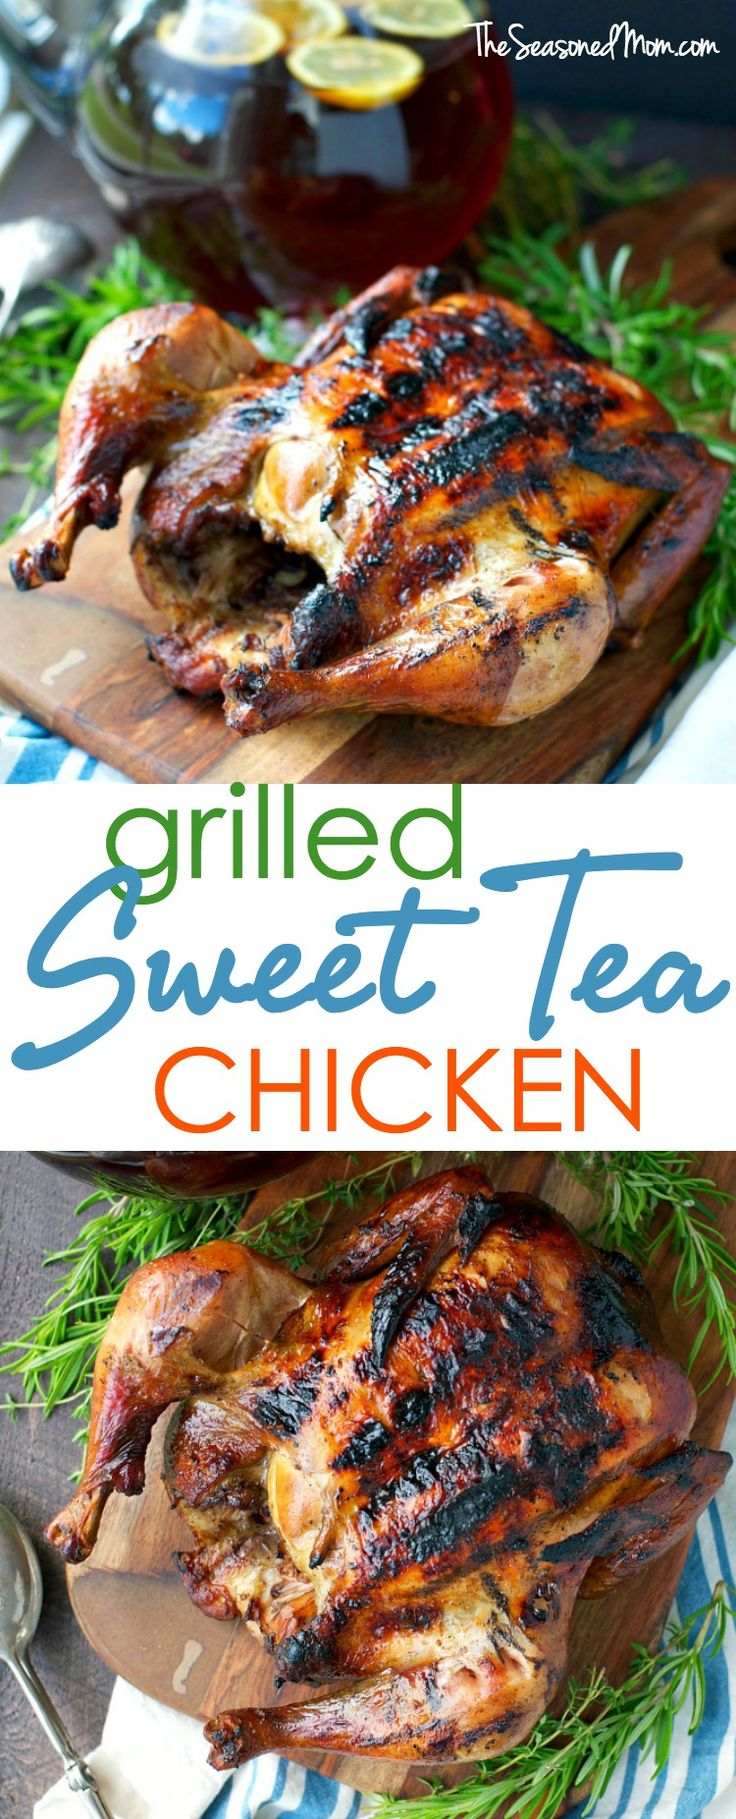 Grilled Sweet Tea Chicken | Recipe | Sweet Tea, Southern Dinner and ...